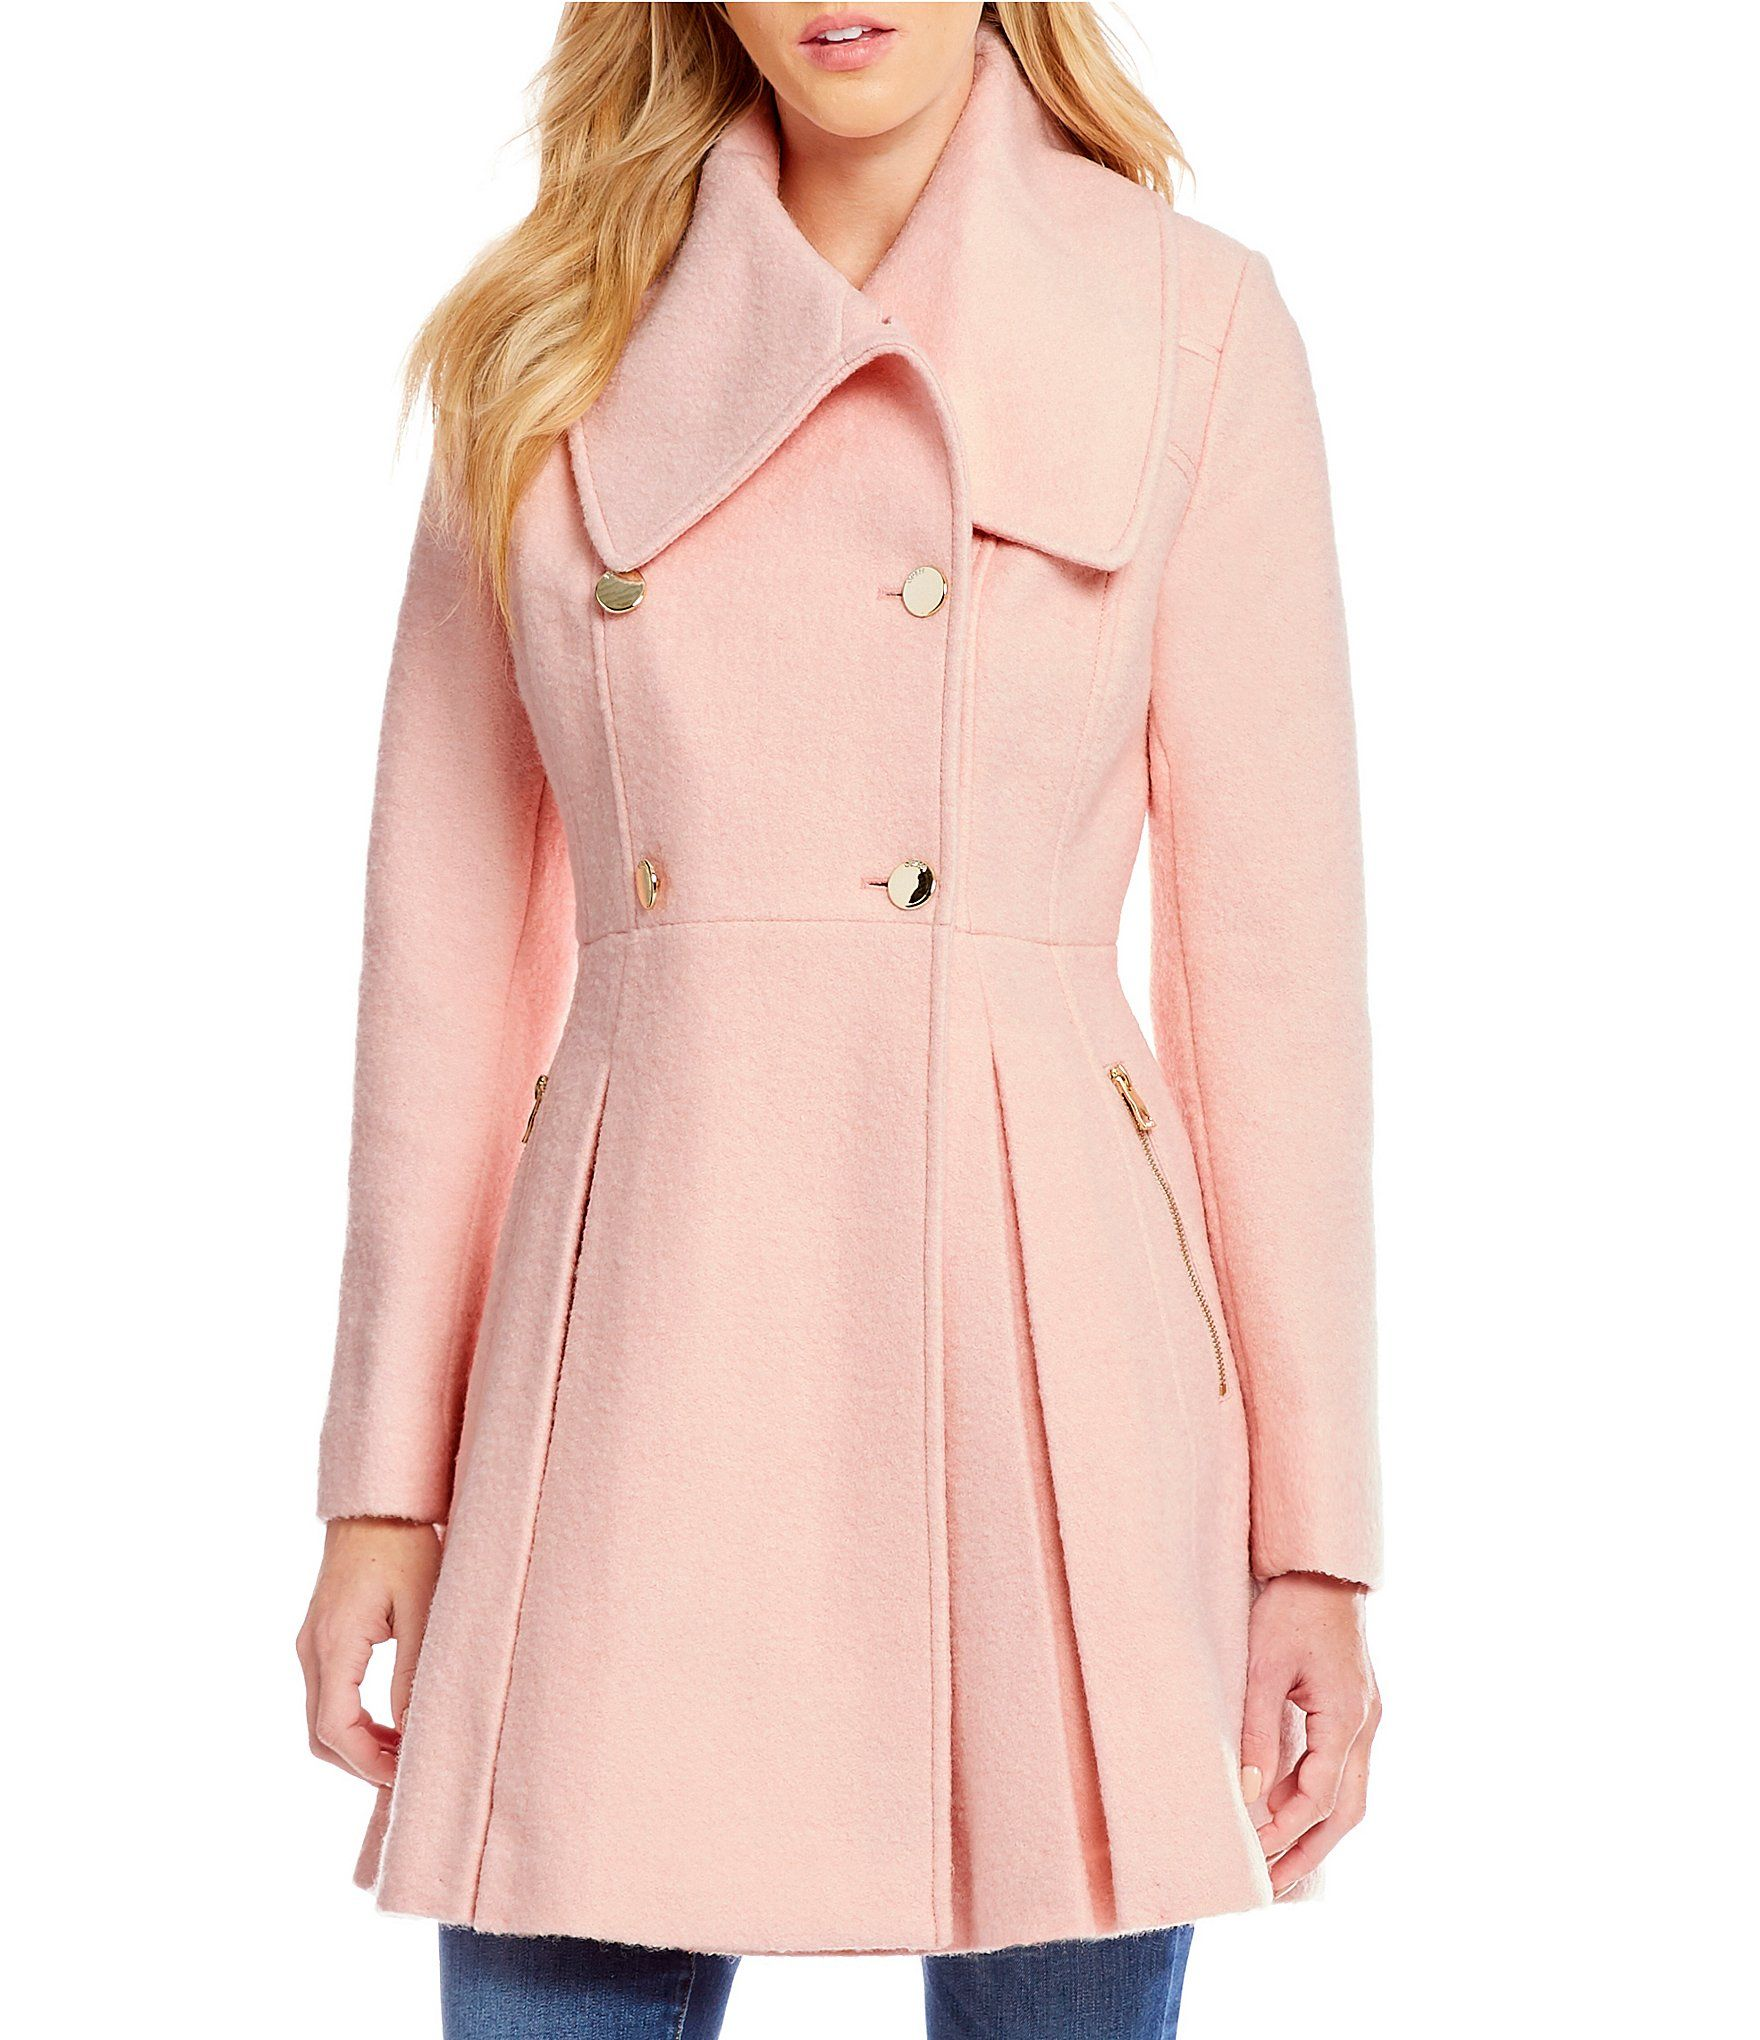 Guess Shawl Collar Double Breasted Fitandflare Wool Peacoat Dillards Coats For Women Wool Peacoat Coat [ 2040 x 1760 Pixel ]